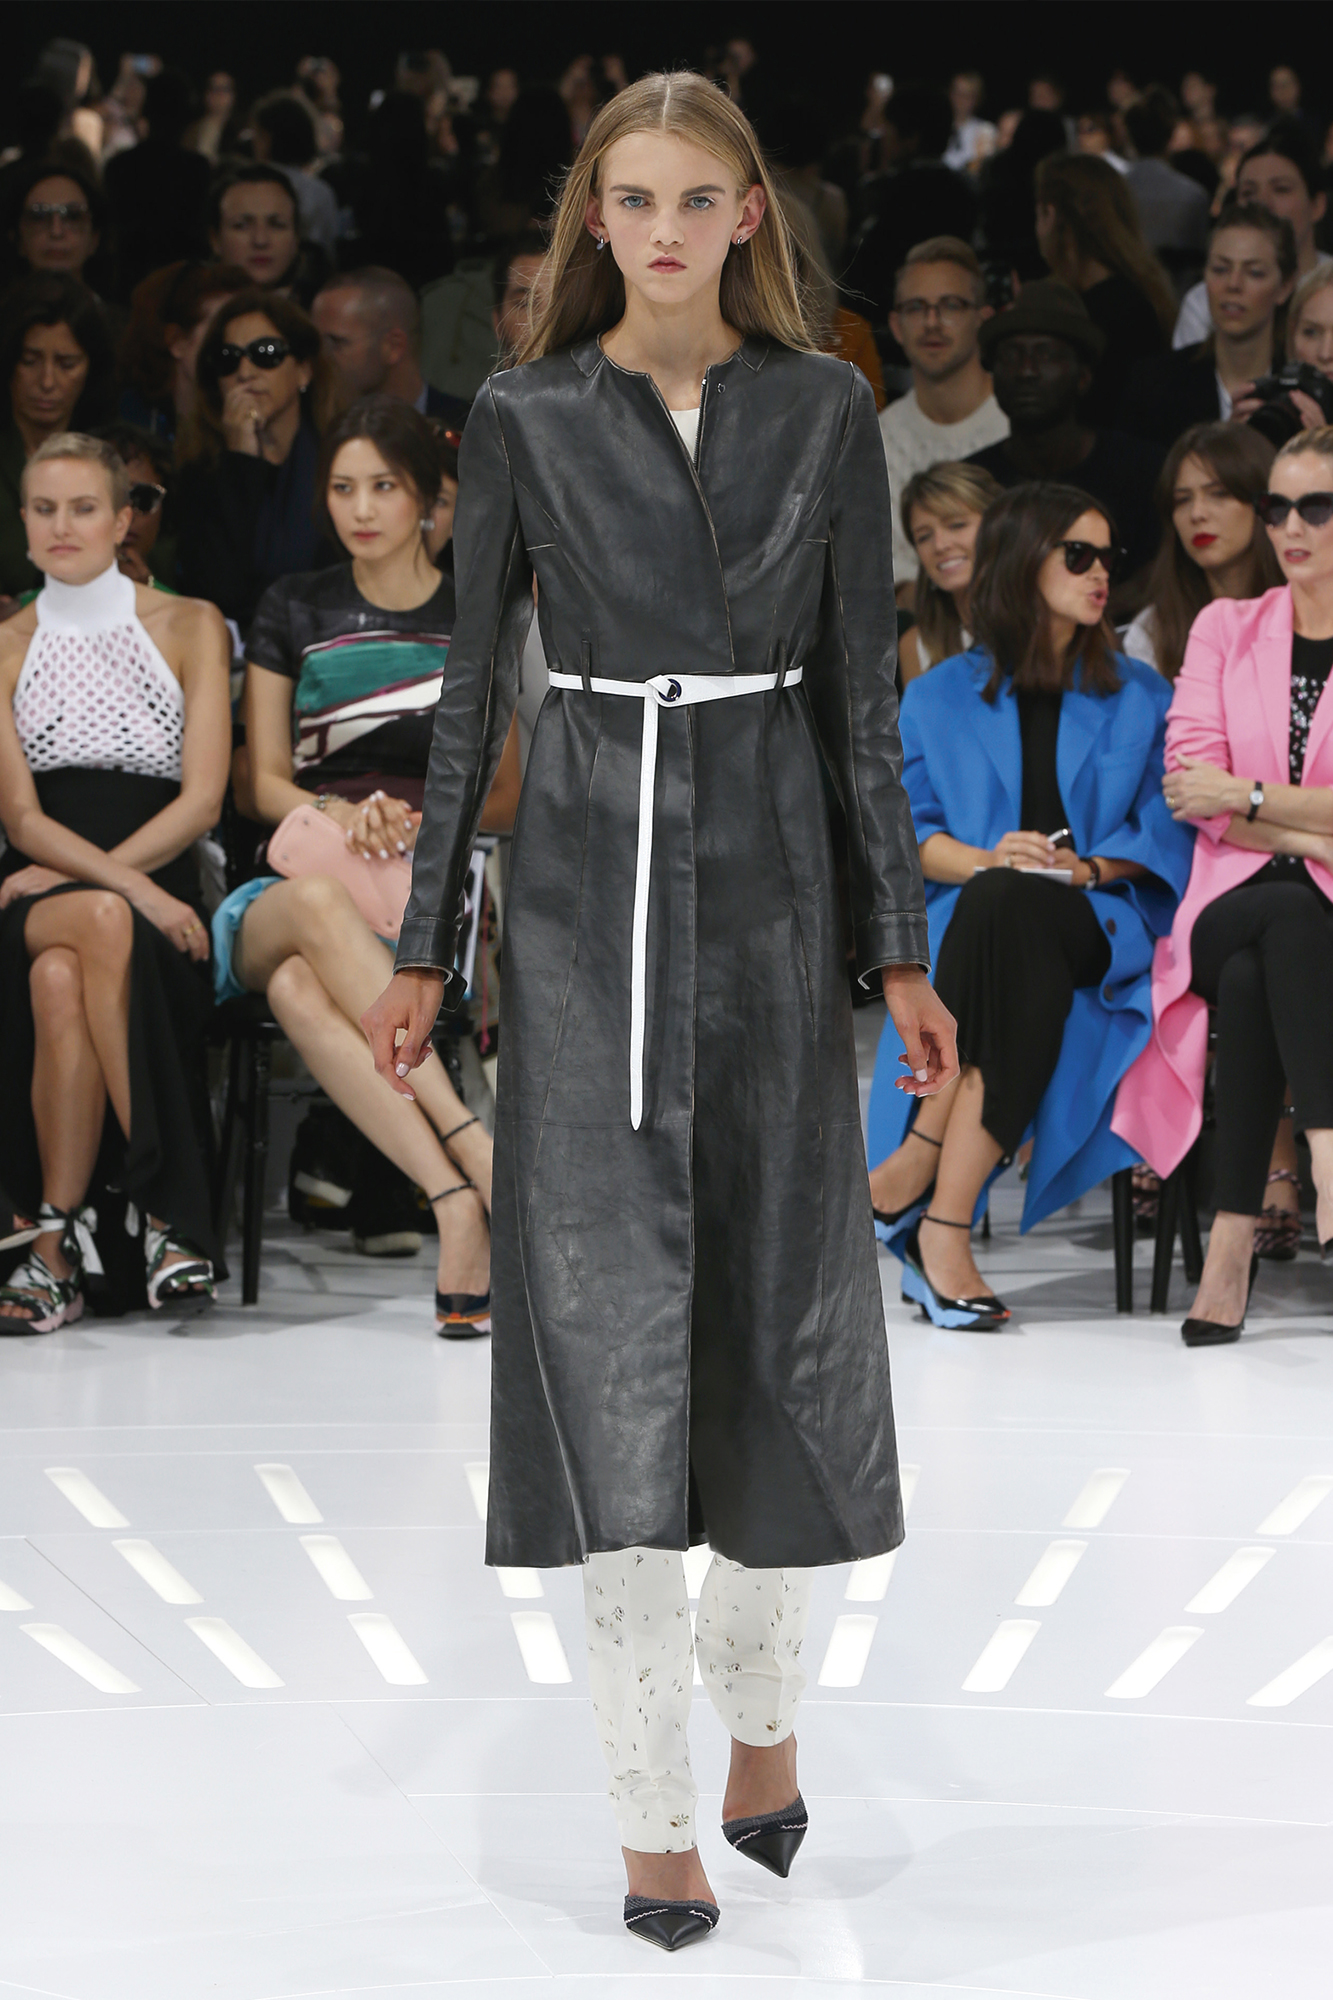 New Western Fashion Christian Dior Ready To Wear Dresses Spring Summer Collection 2015 (13)